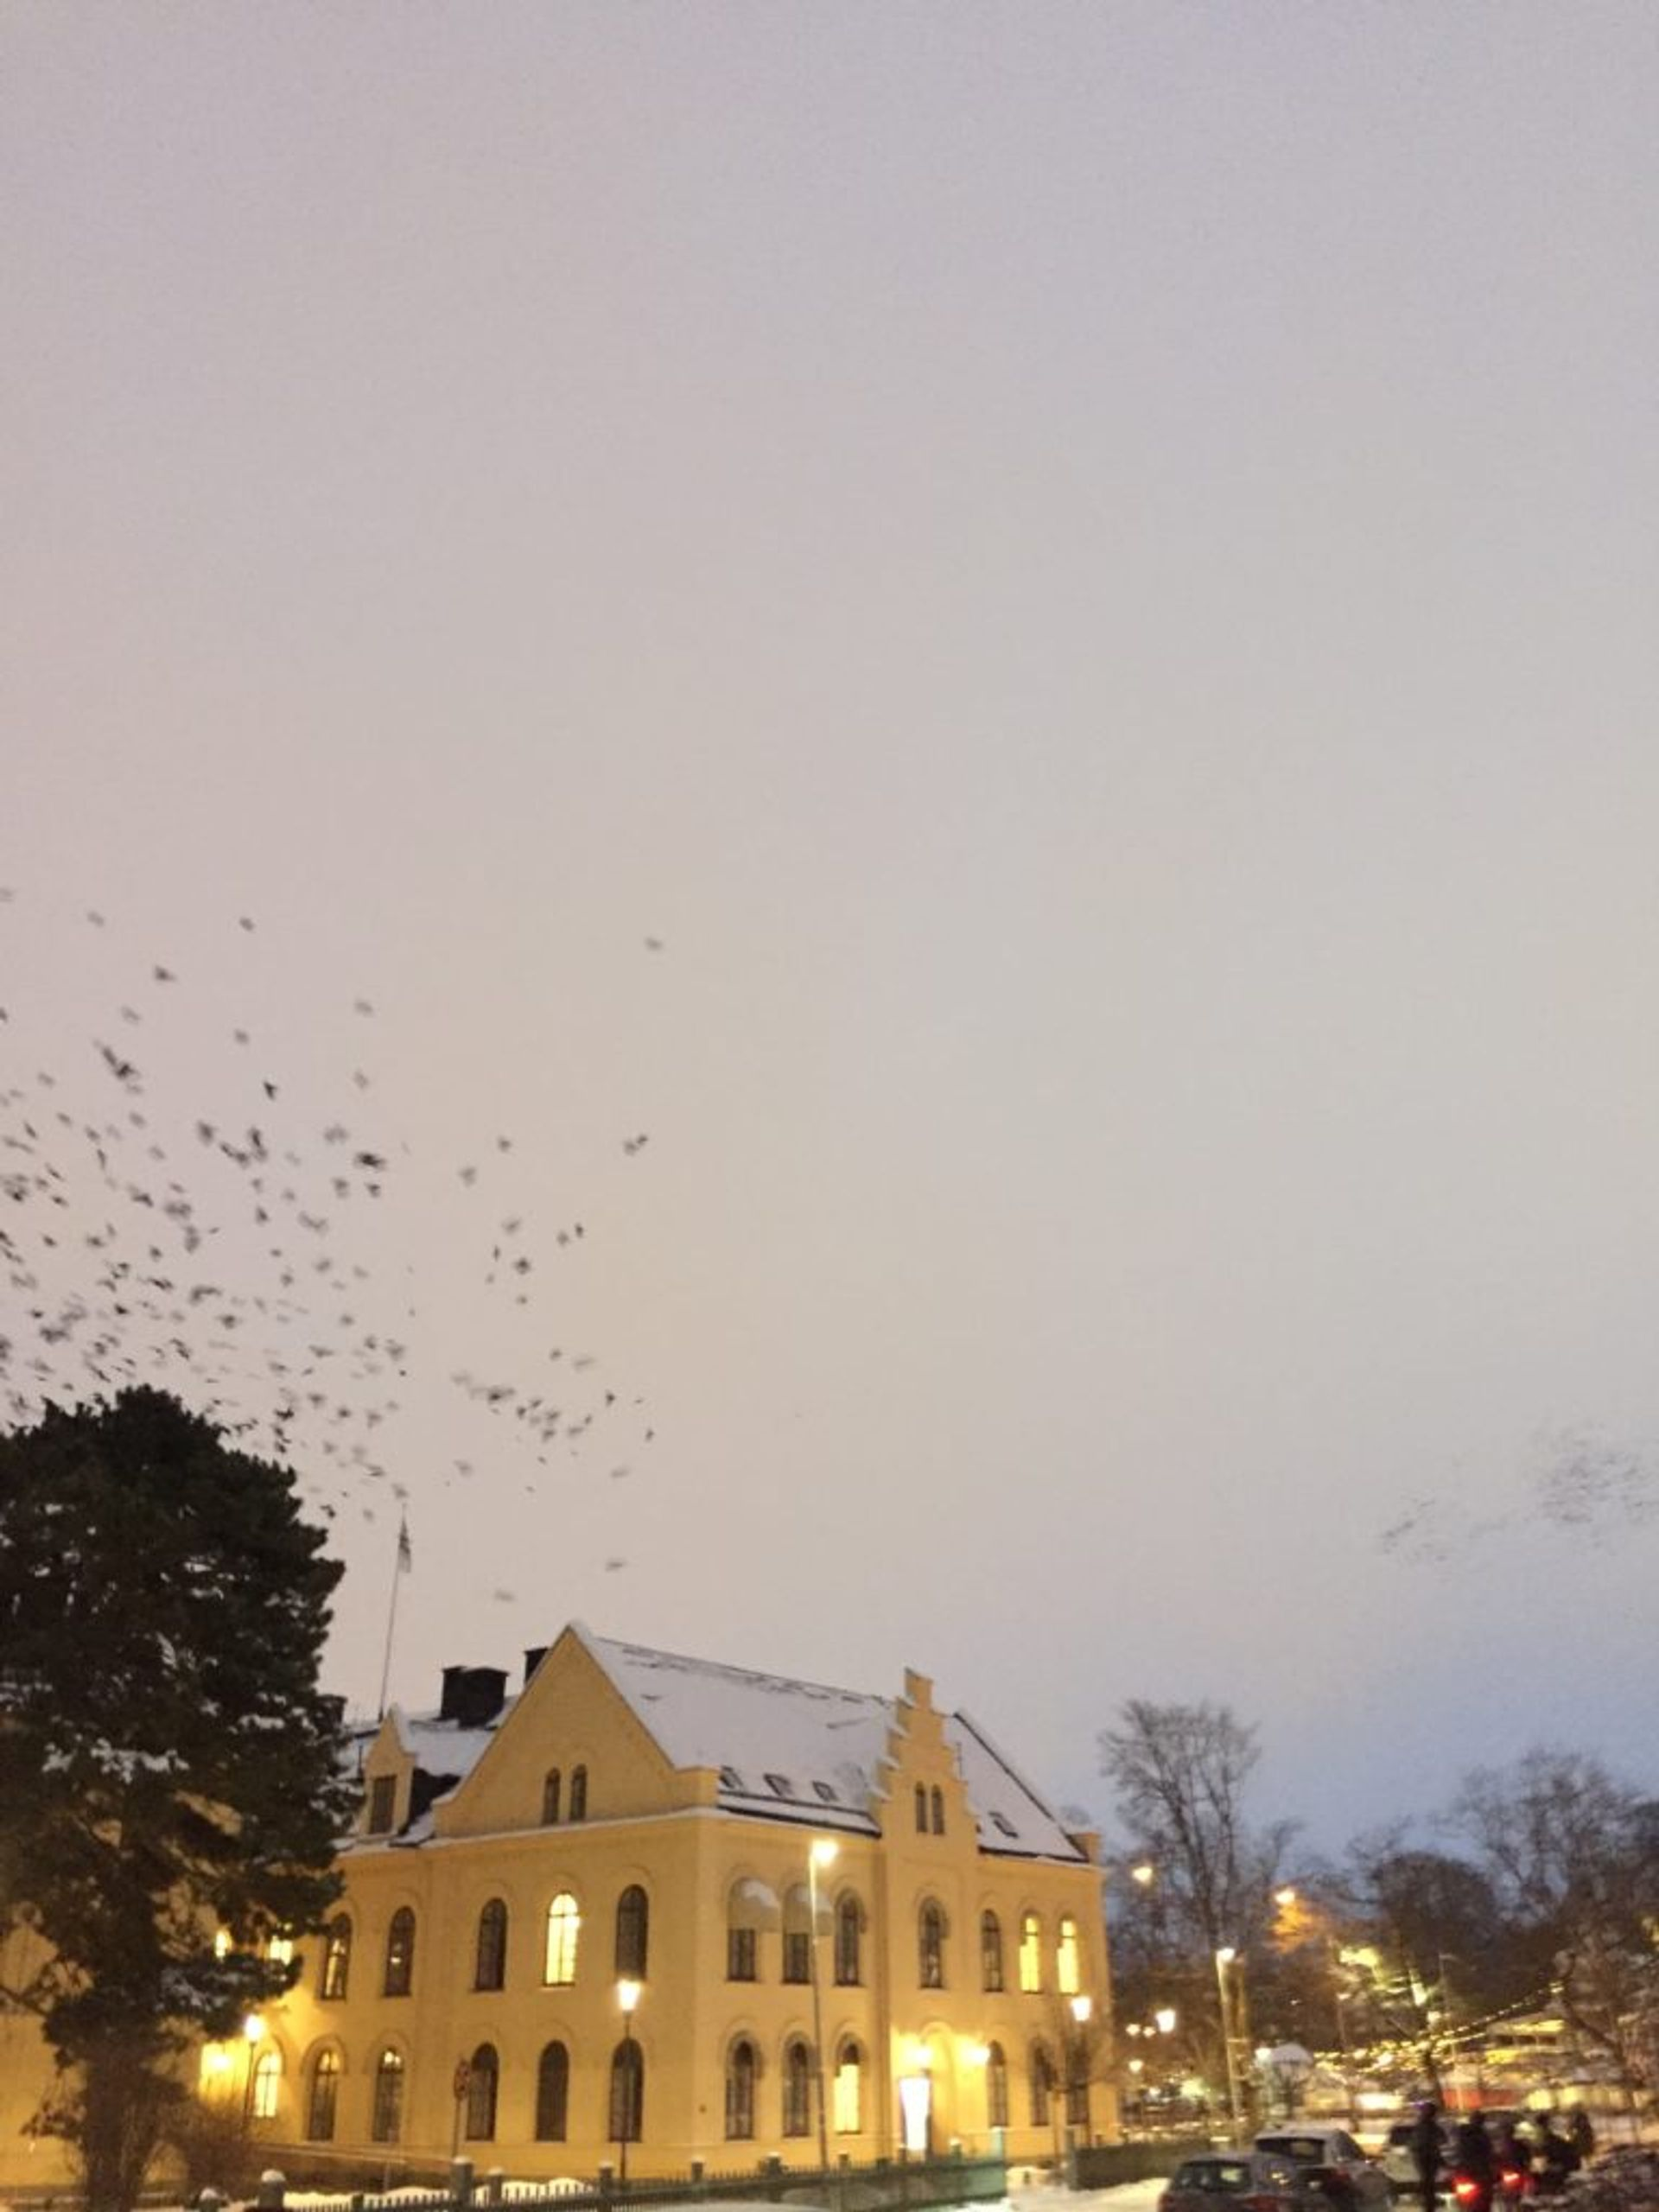 Birds flying above a building.